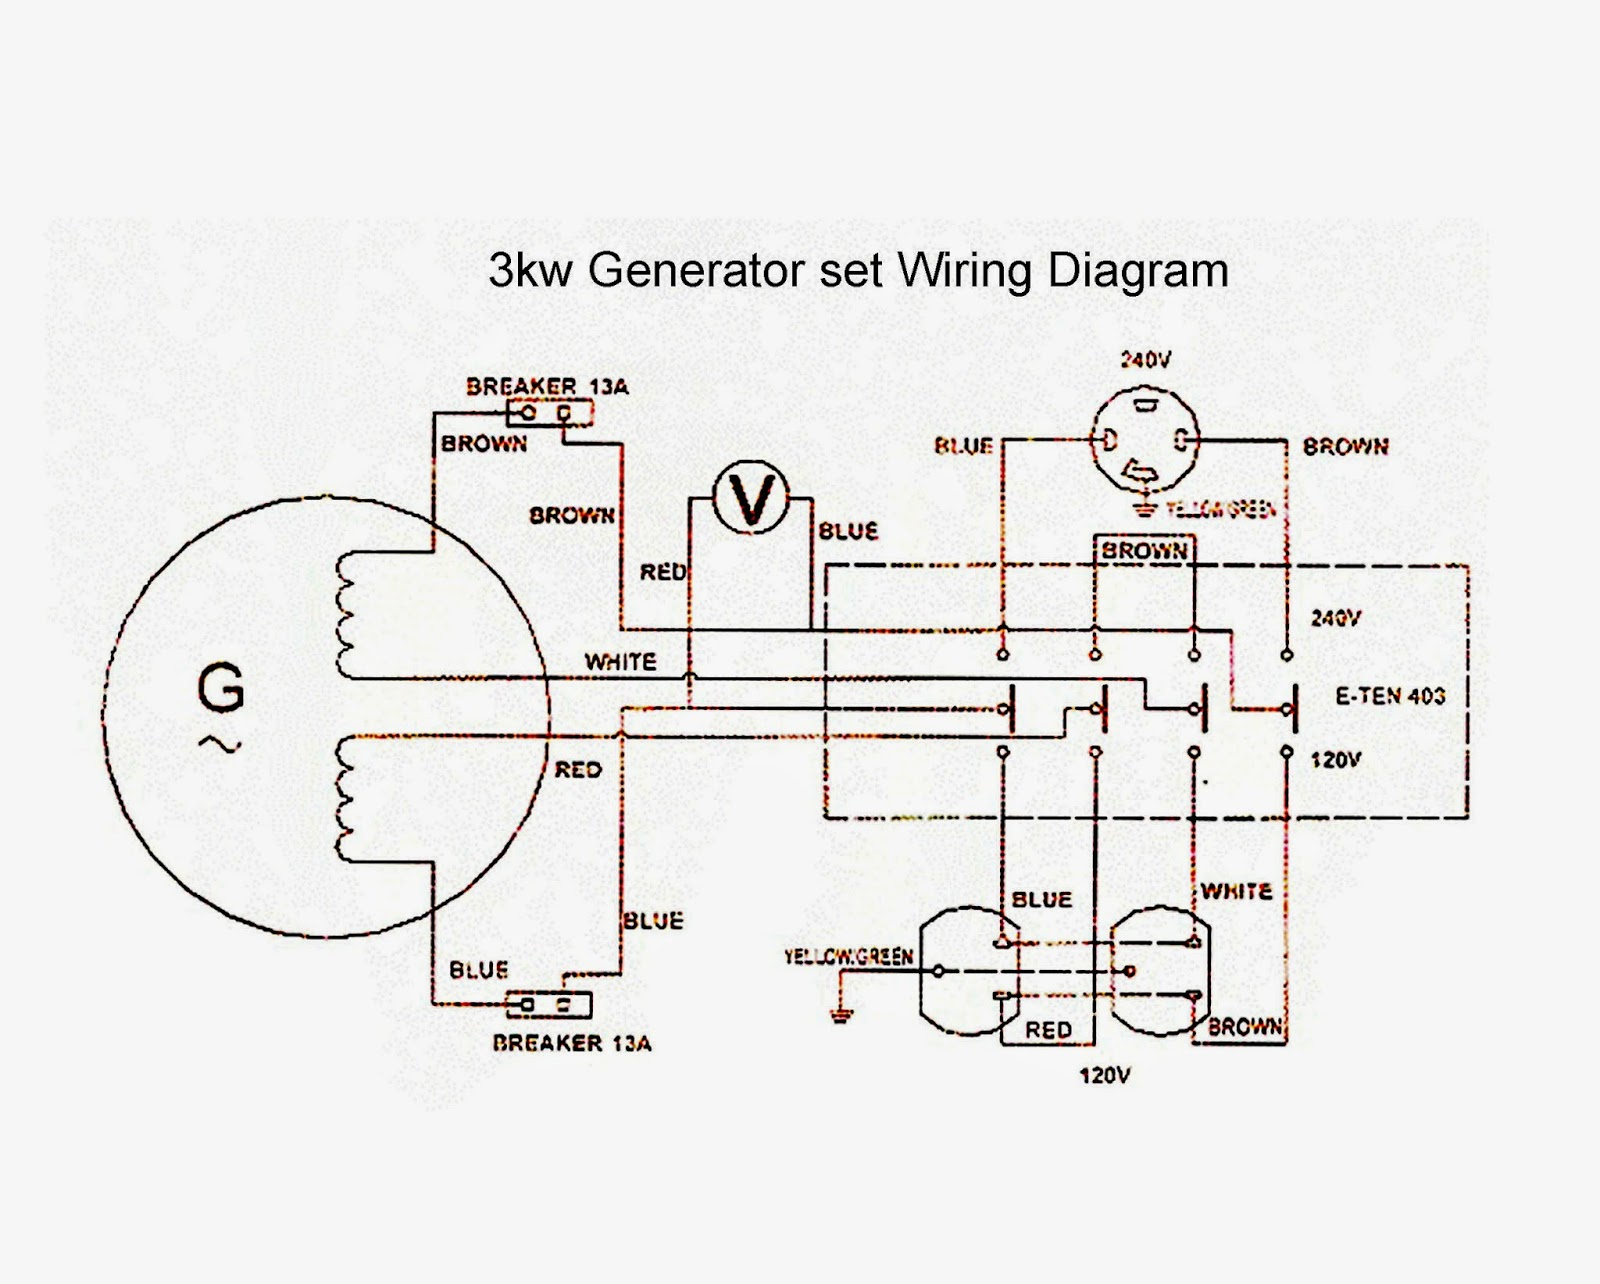 Wiring Diagram Generator Books Of Wiring Diagram \u2022 Generator Panel Wiring  Diagram Generator Wiring Diagram